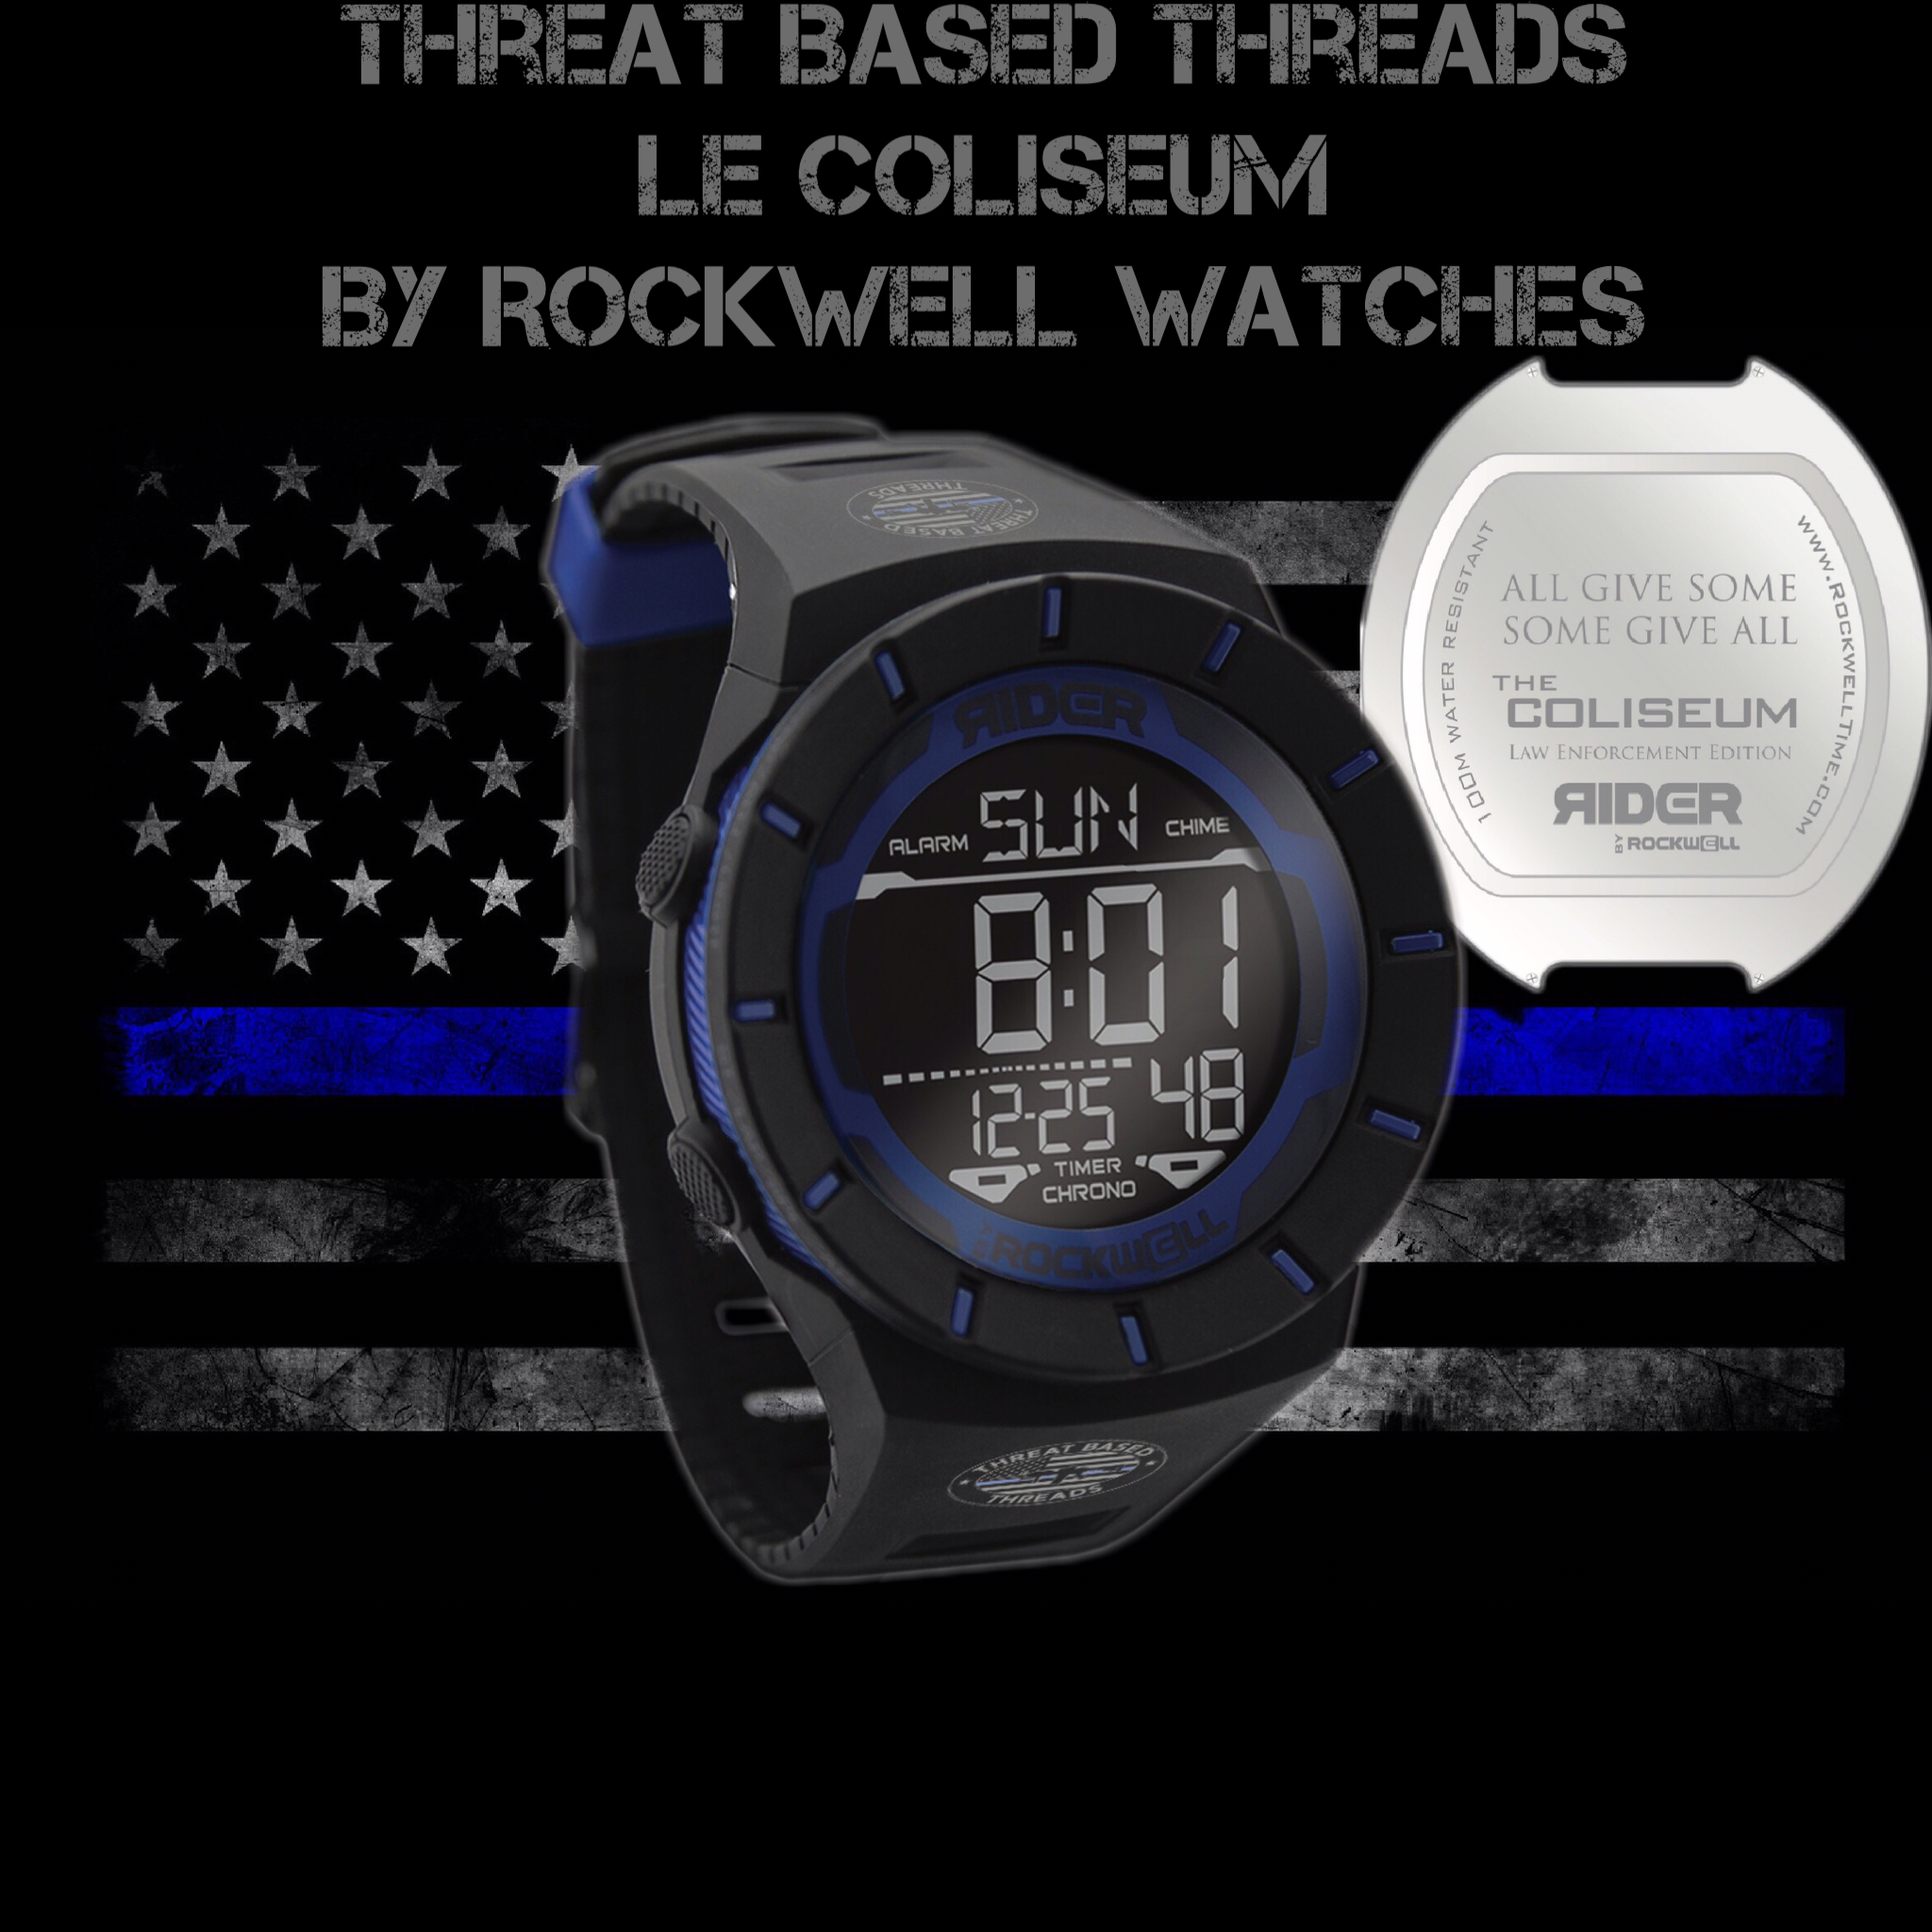 law and as enforcement put this appropriate it supporting officers watches is day us me visit feeling really community smiles kiss helping gift special police to our a have great shoppe on department national coffee from appreciation for